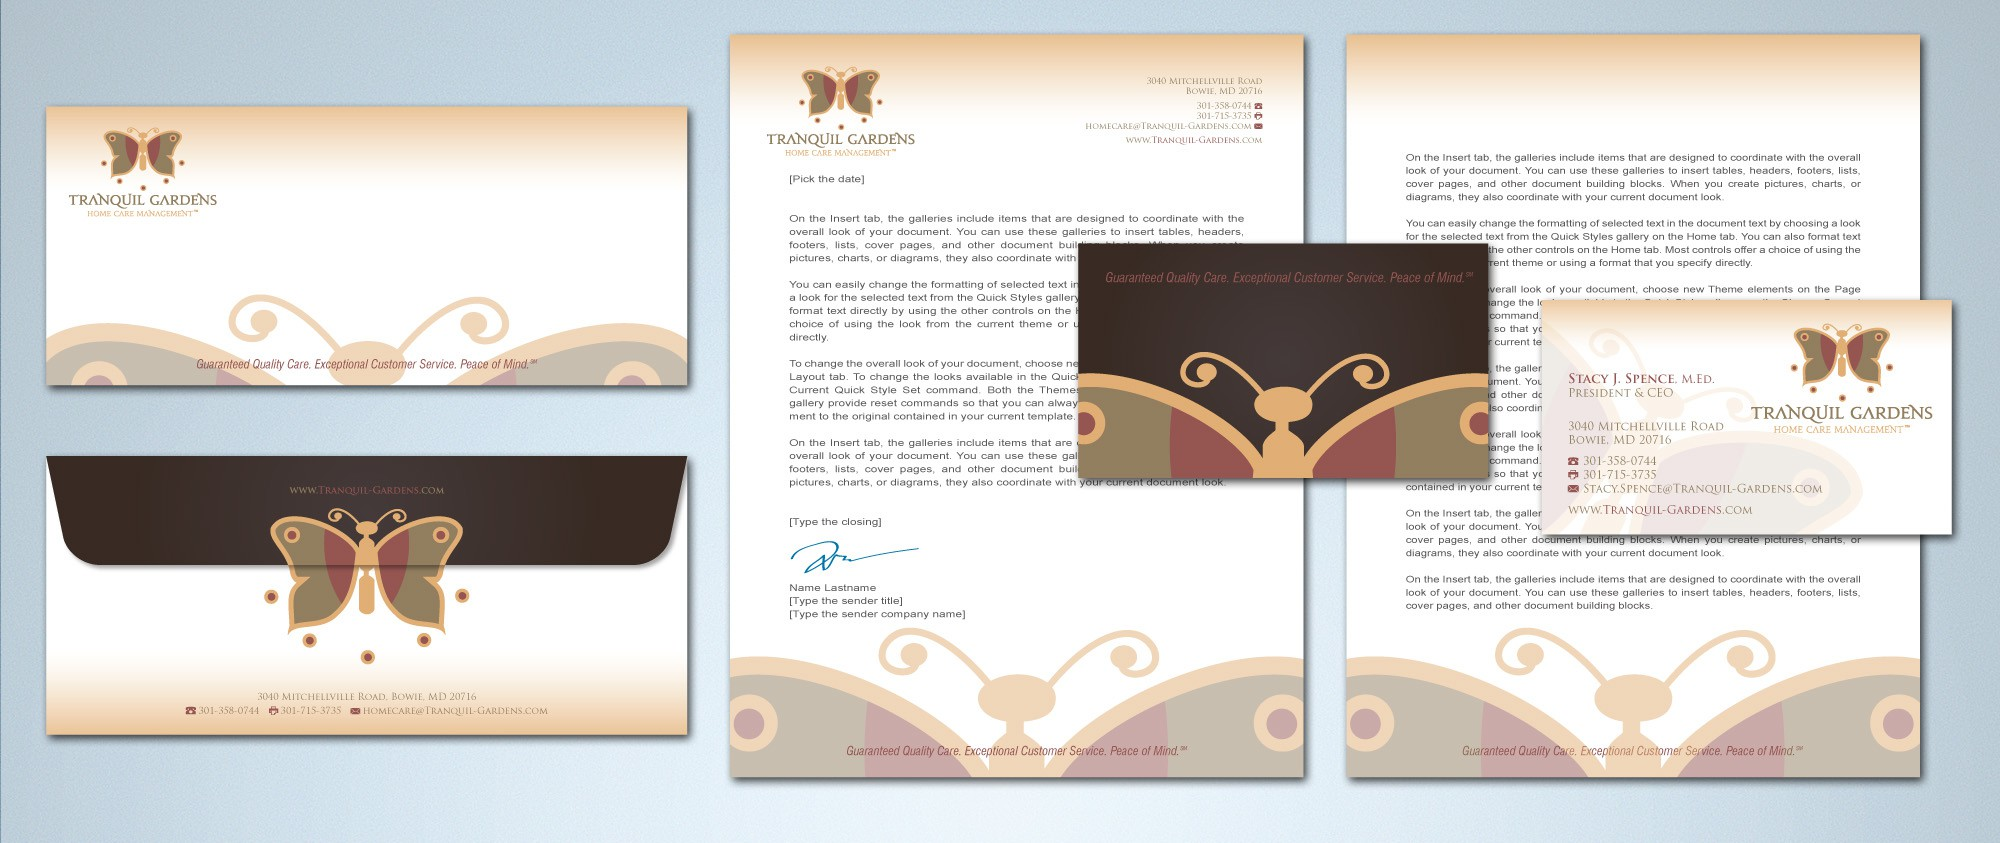 Help Tranquil Gardens Home Care Management with a new stationery